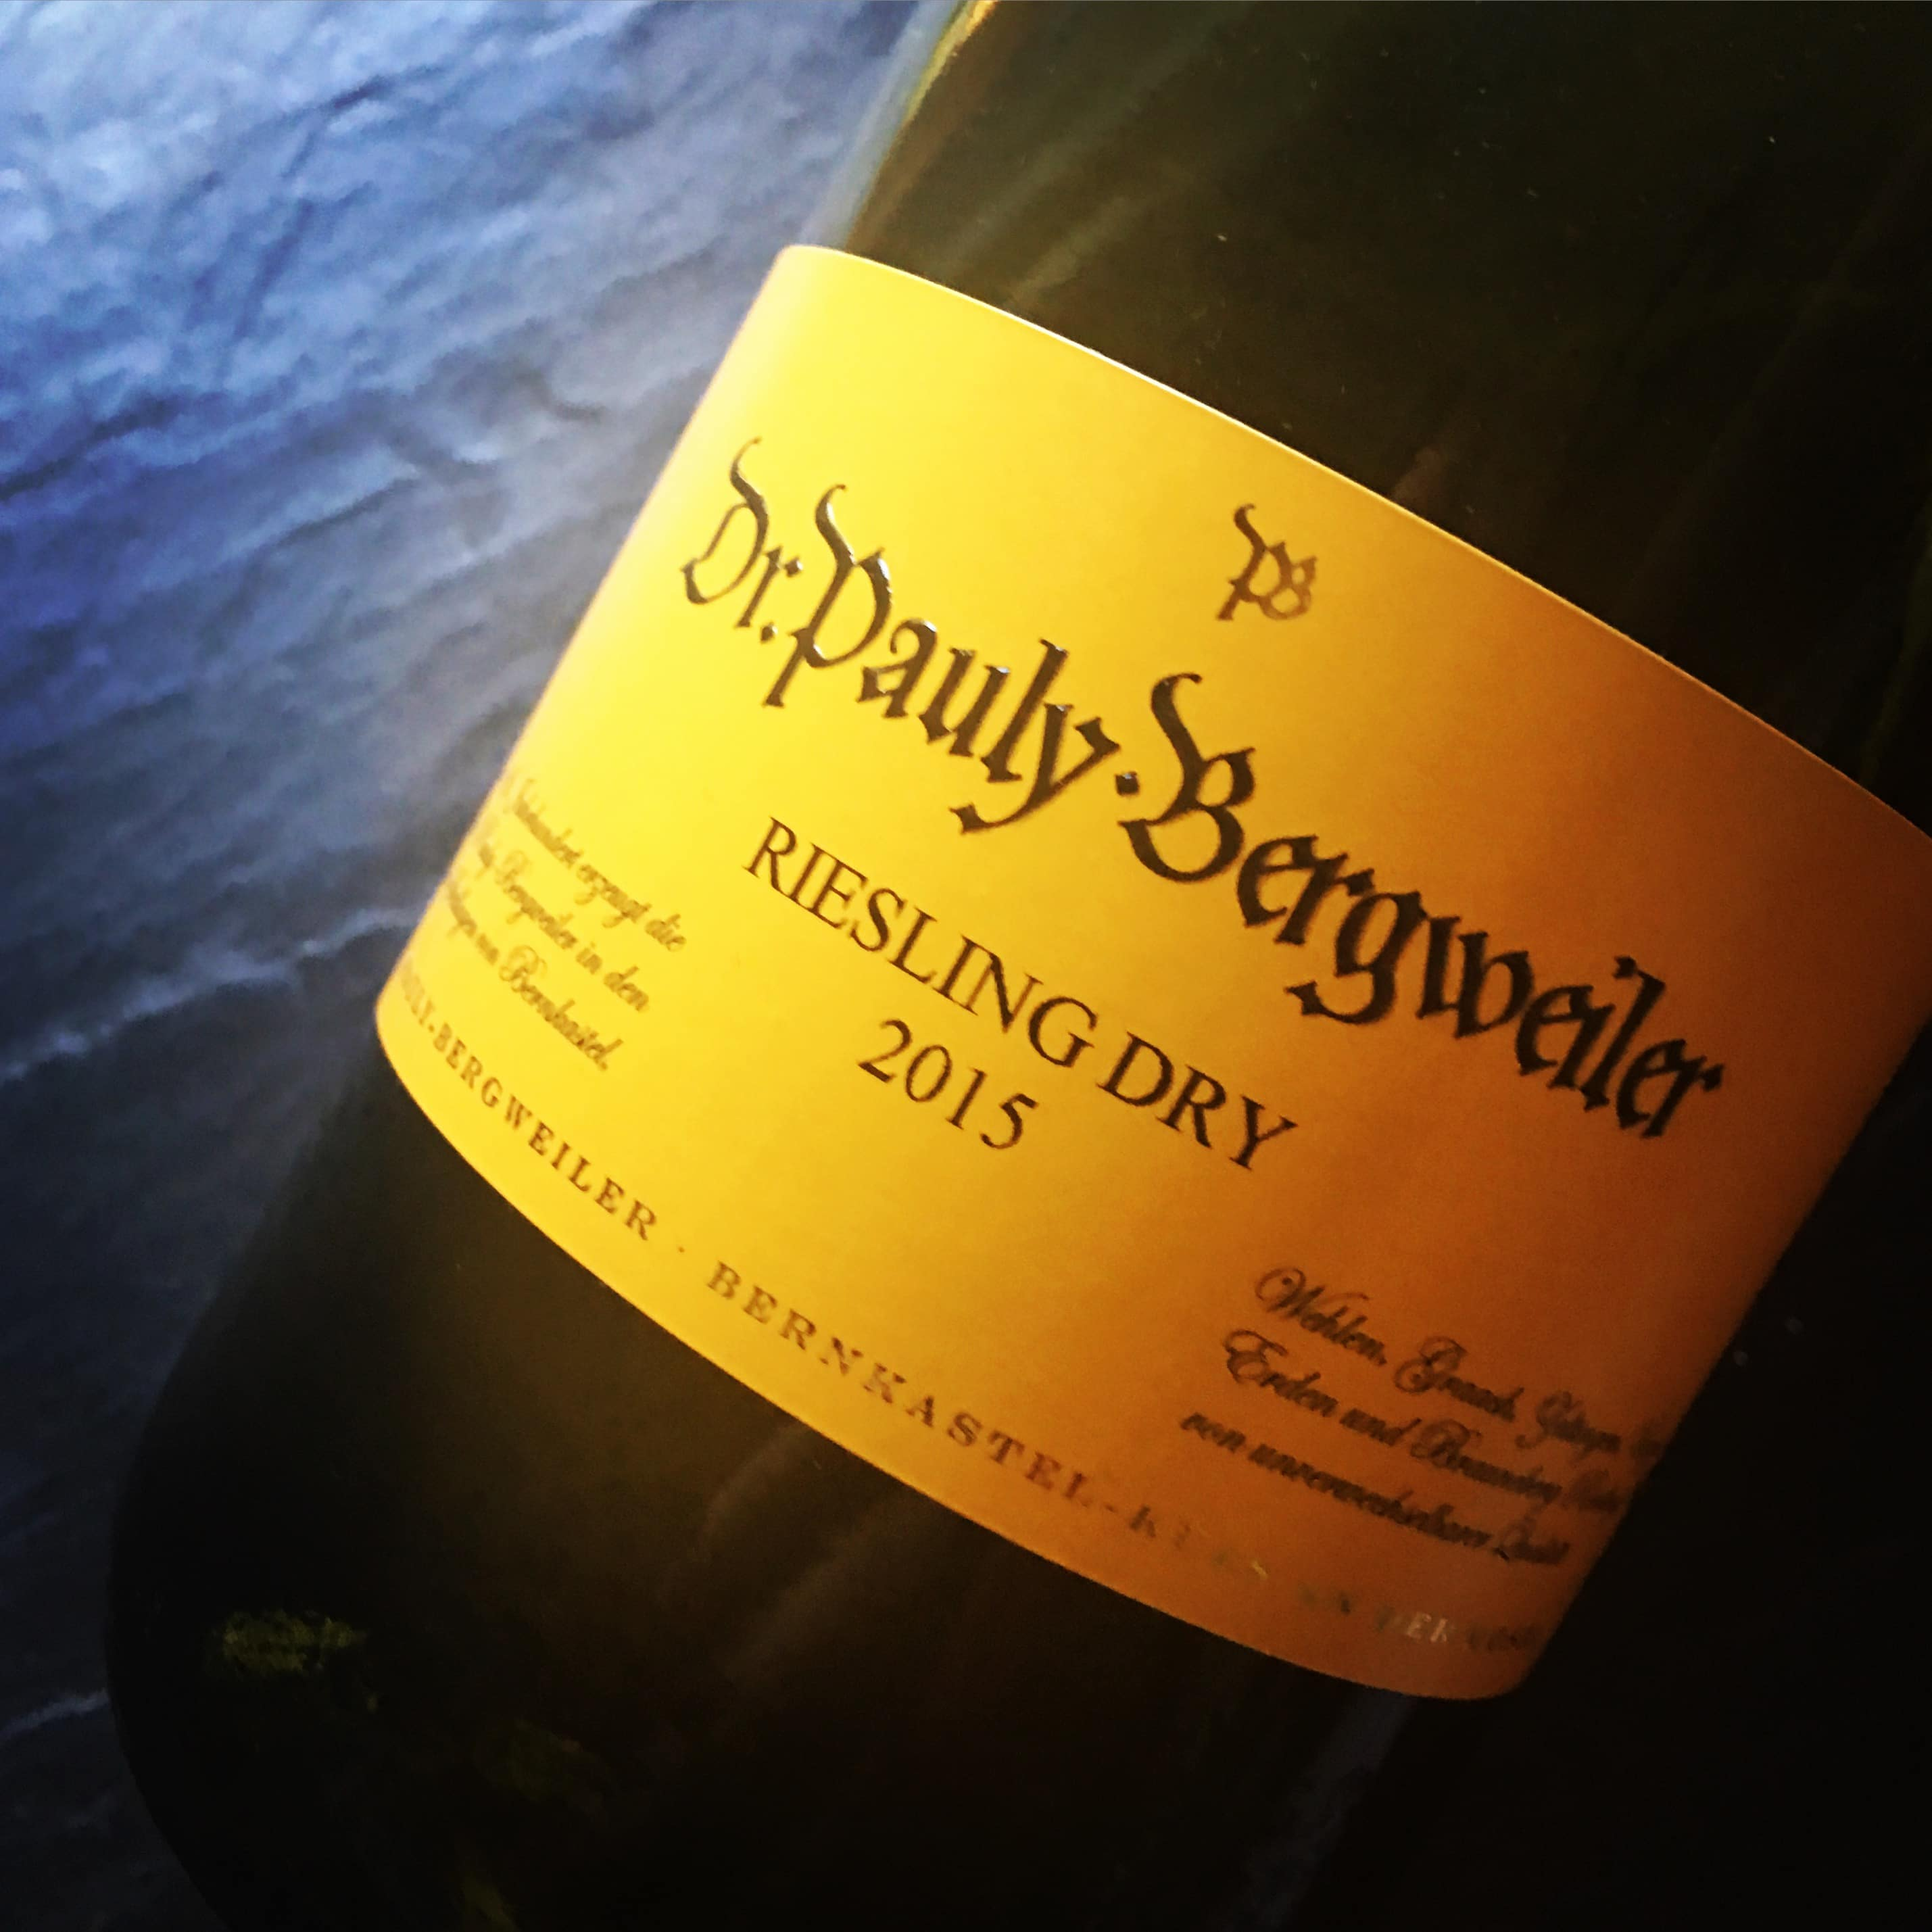 Weingut Dr.Pauly-Bergweiler Dry Riesling 2015